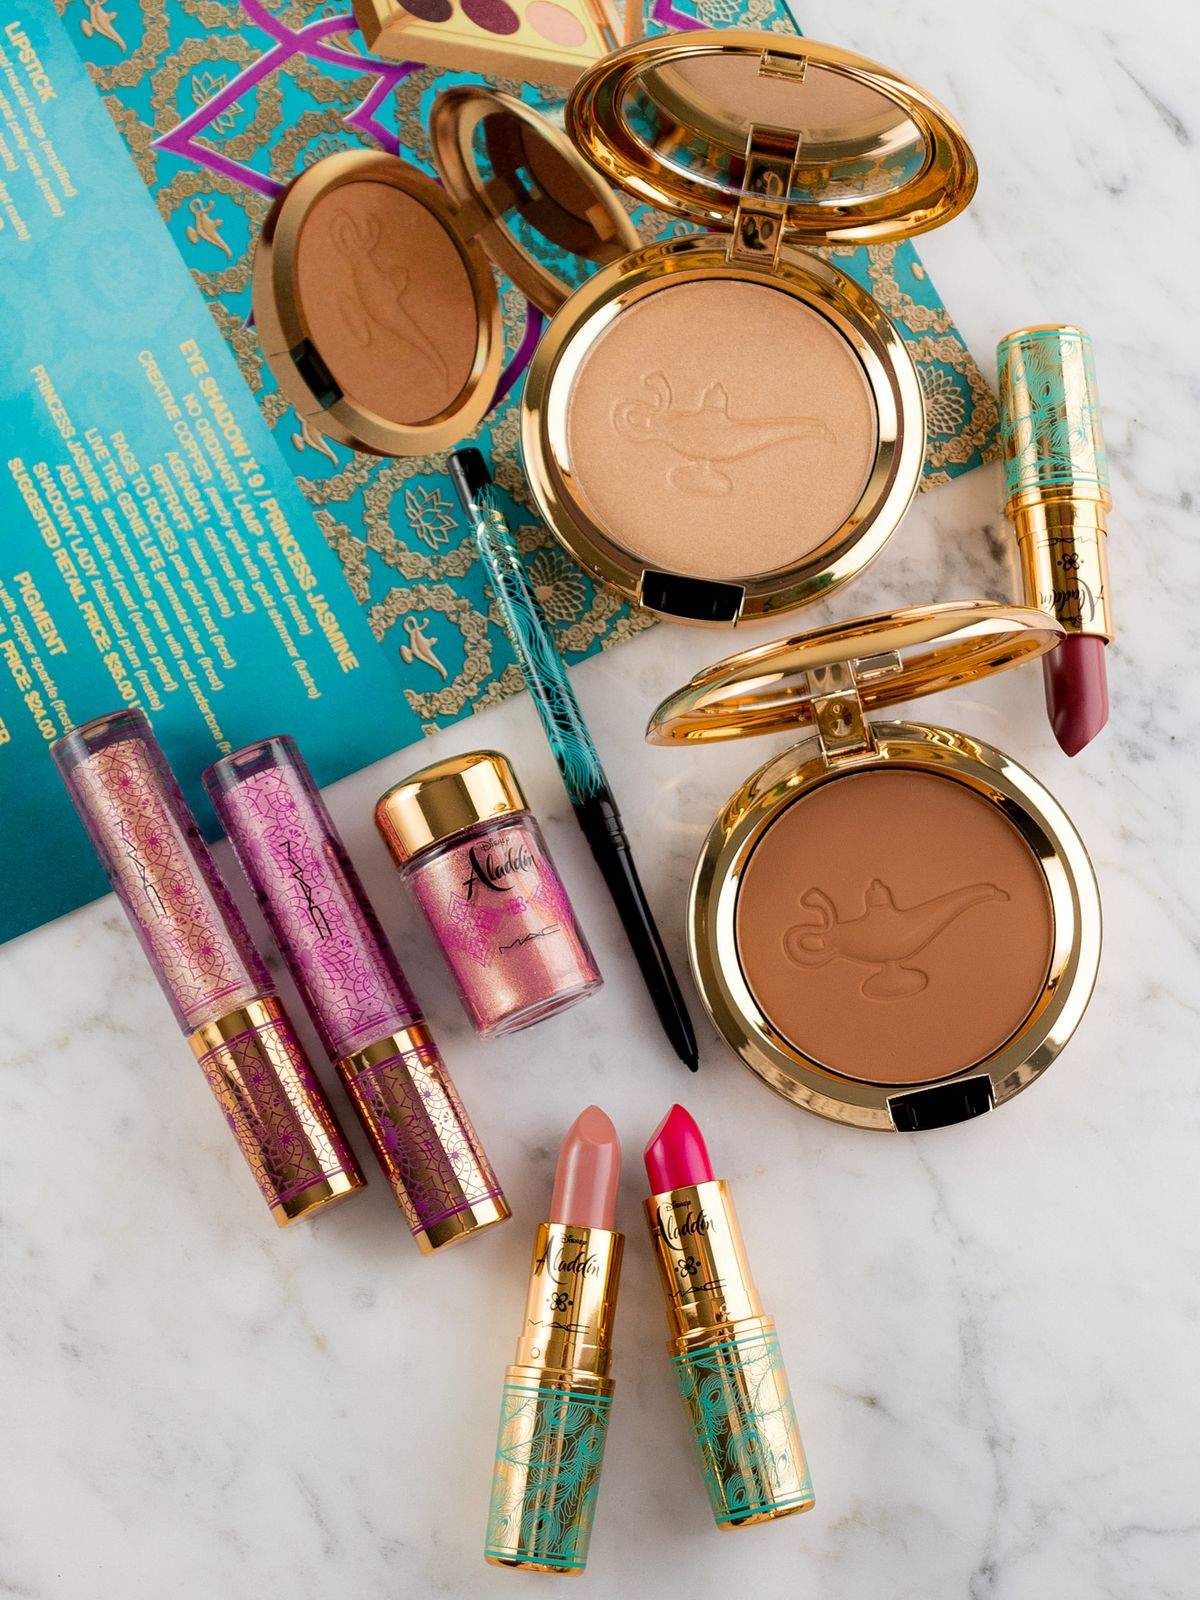 The Disney Aladdin Collection by MAC Cosmetics